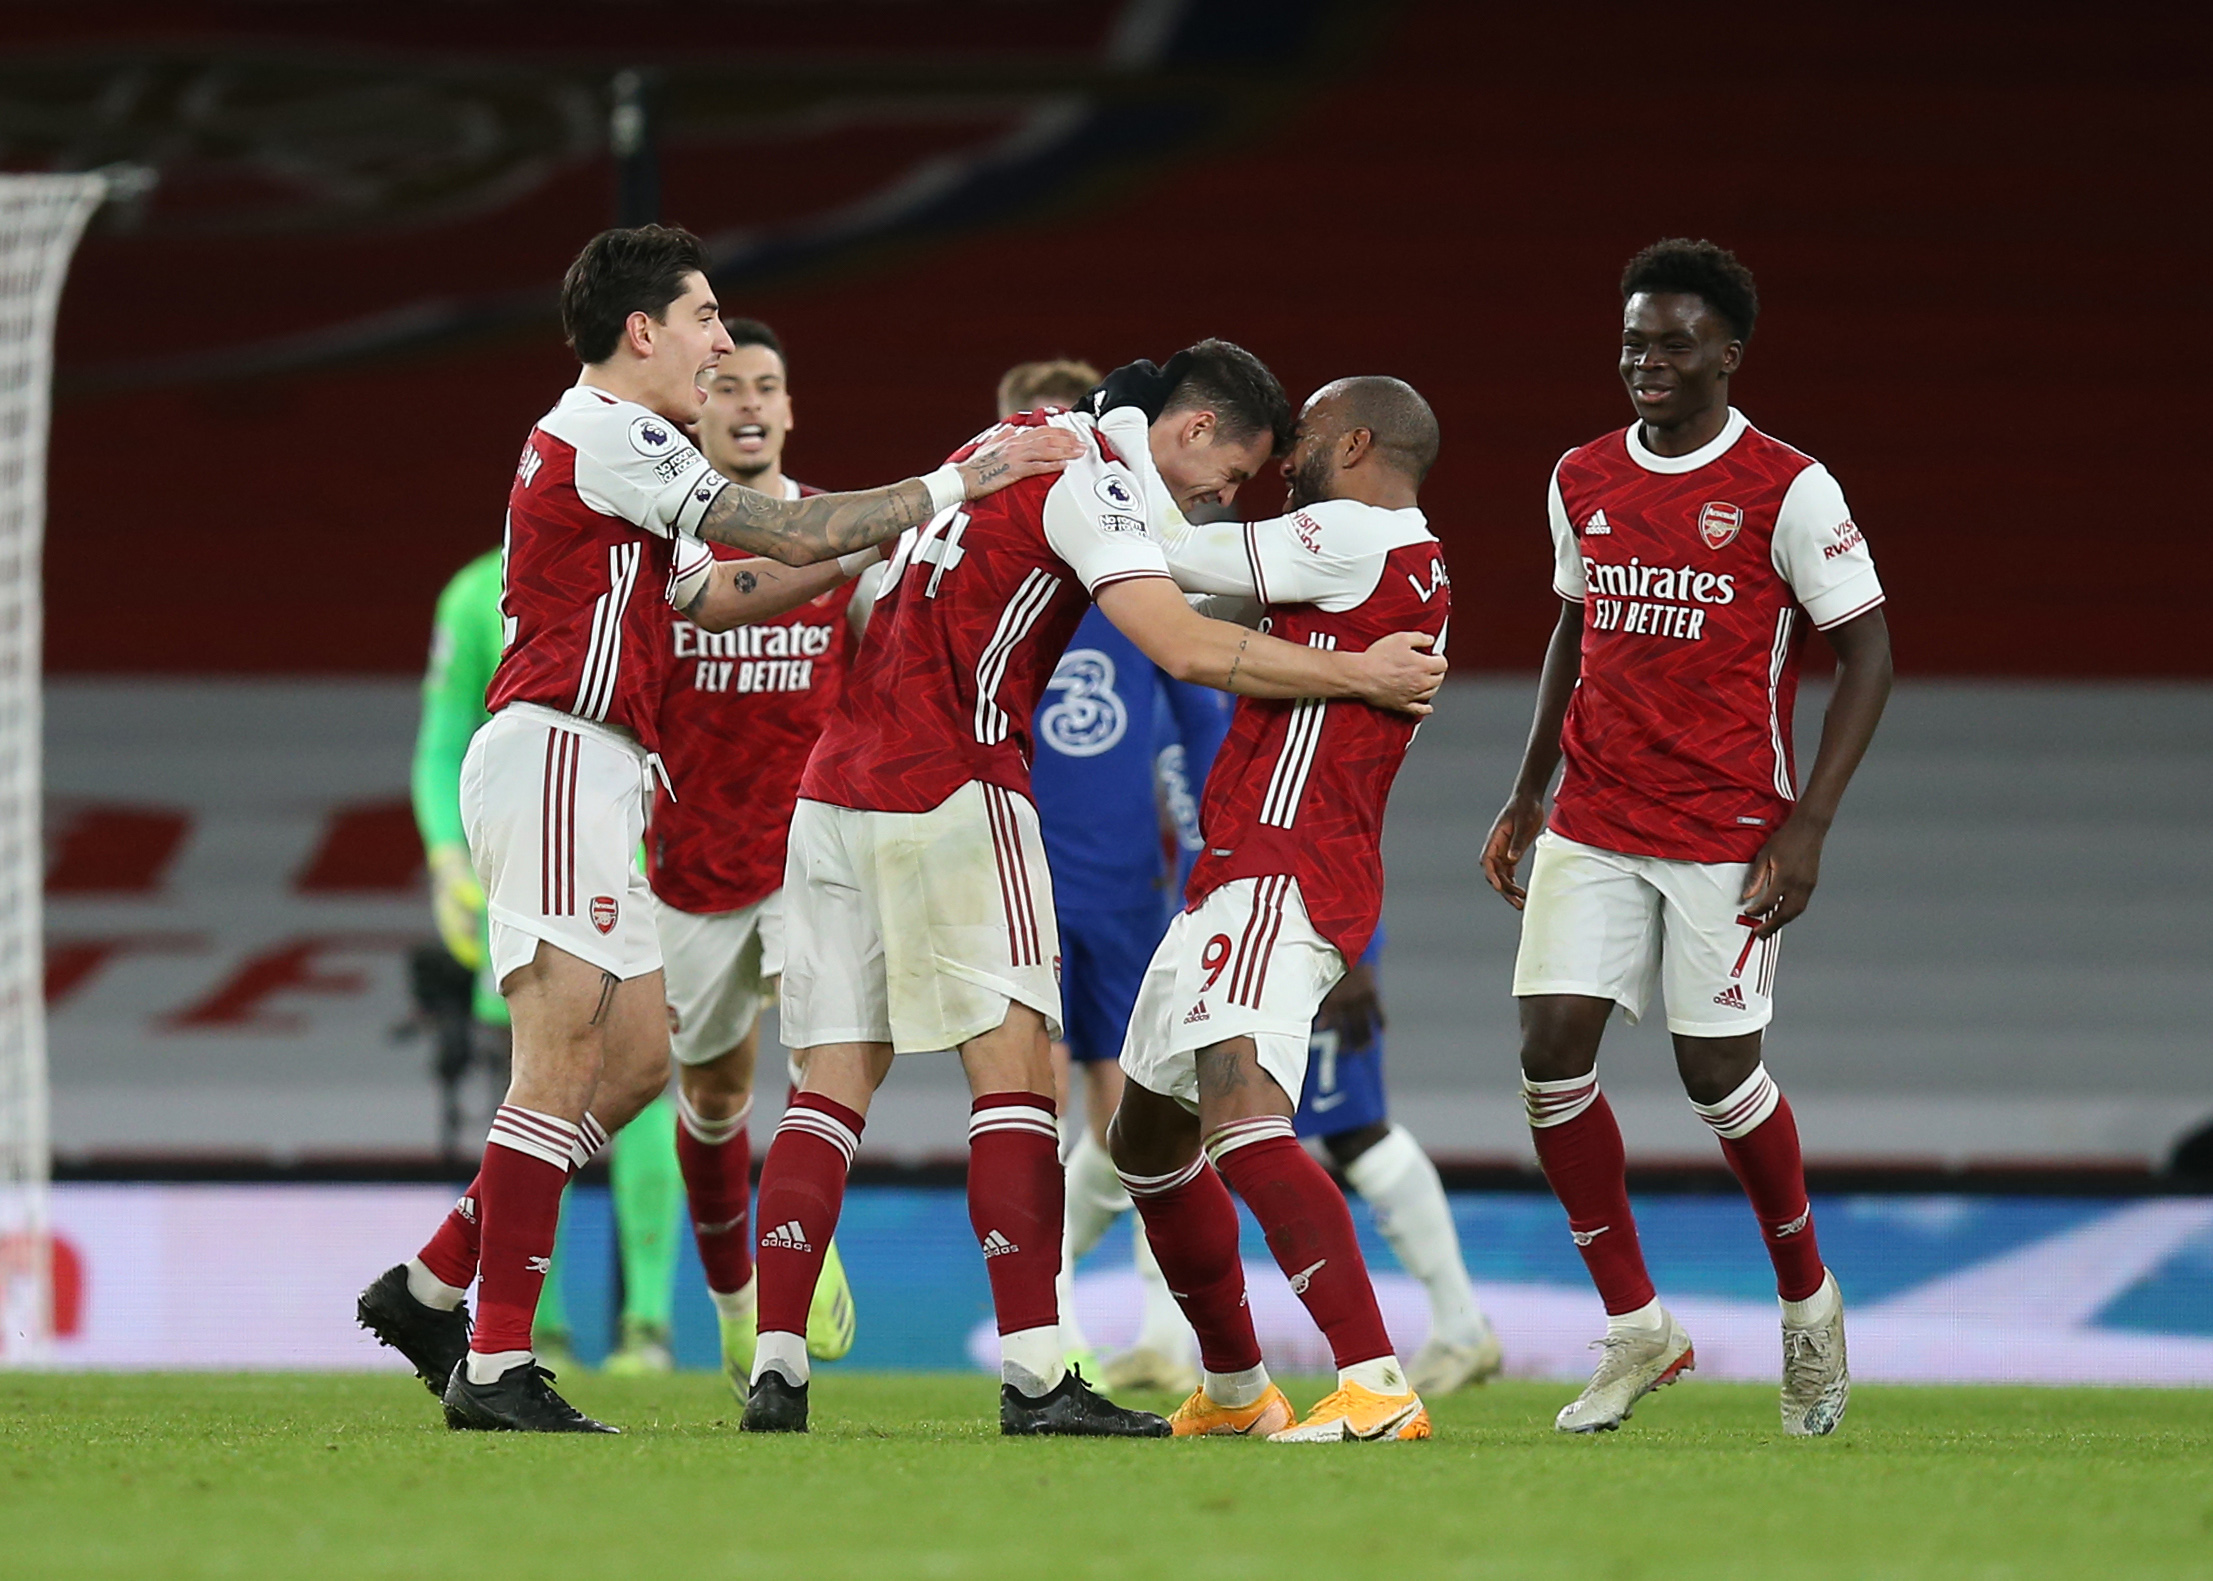 Arsenal: Reasons to be cheerful after Mikel Arteta's Gunners show quality